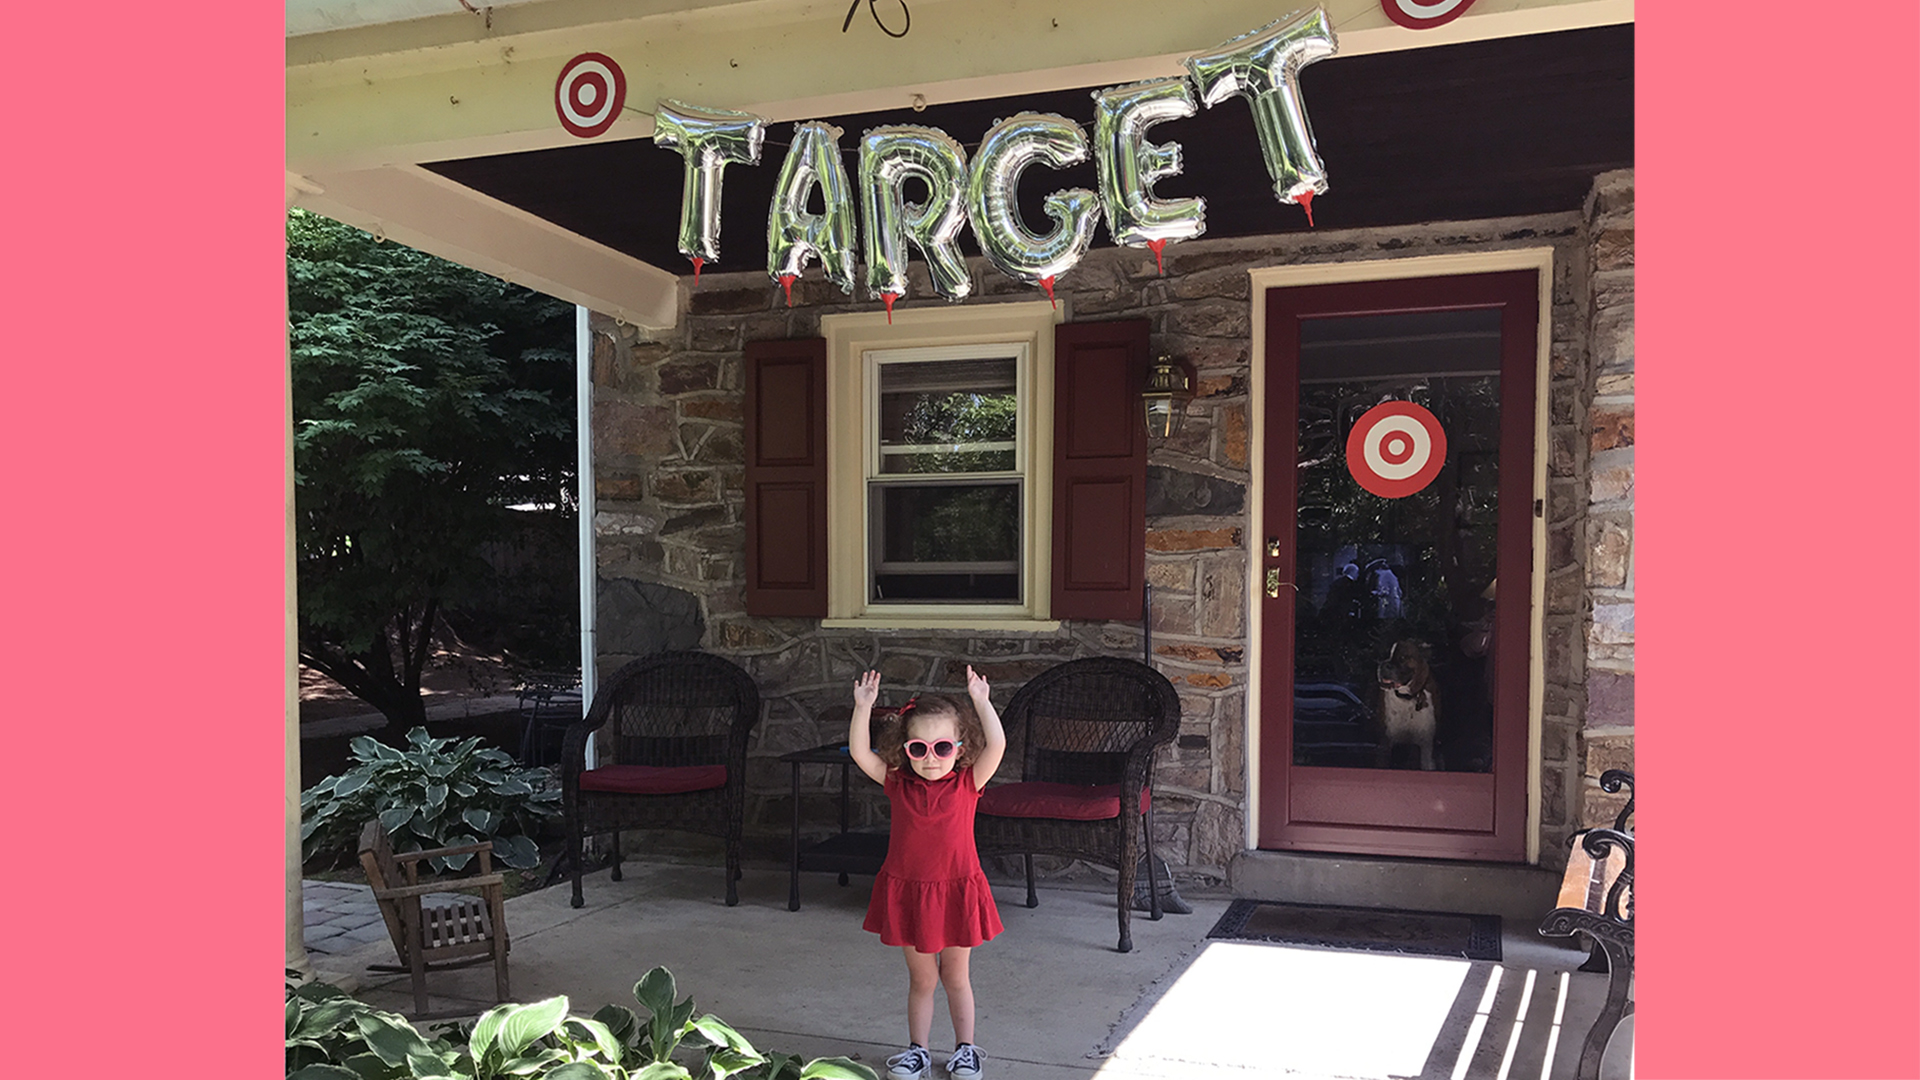 Mom plans amazing Targetthemed birthday party for daughter TODAYcom